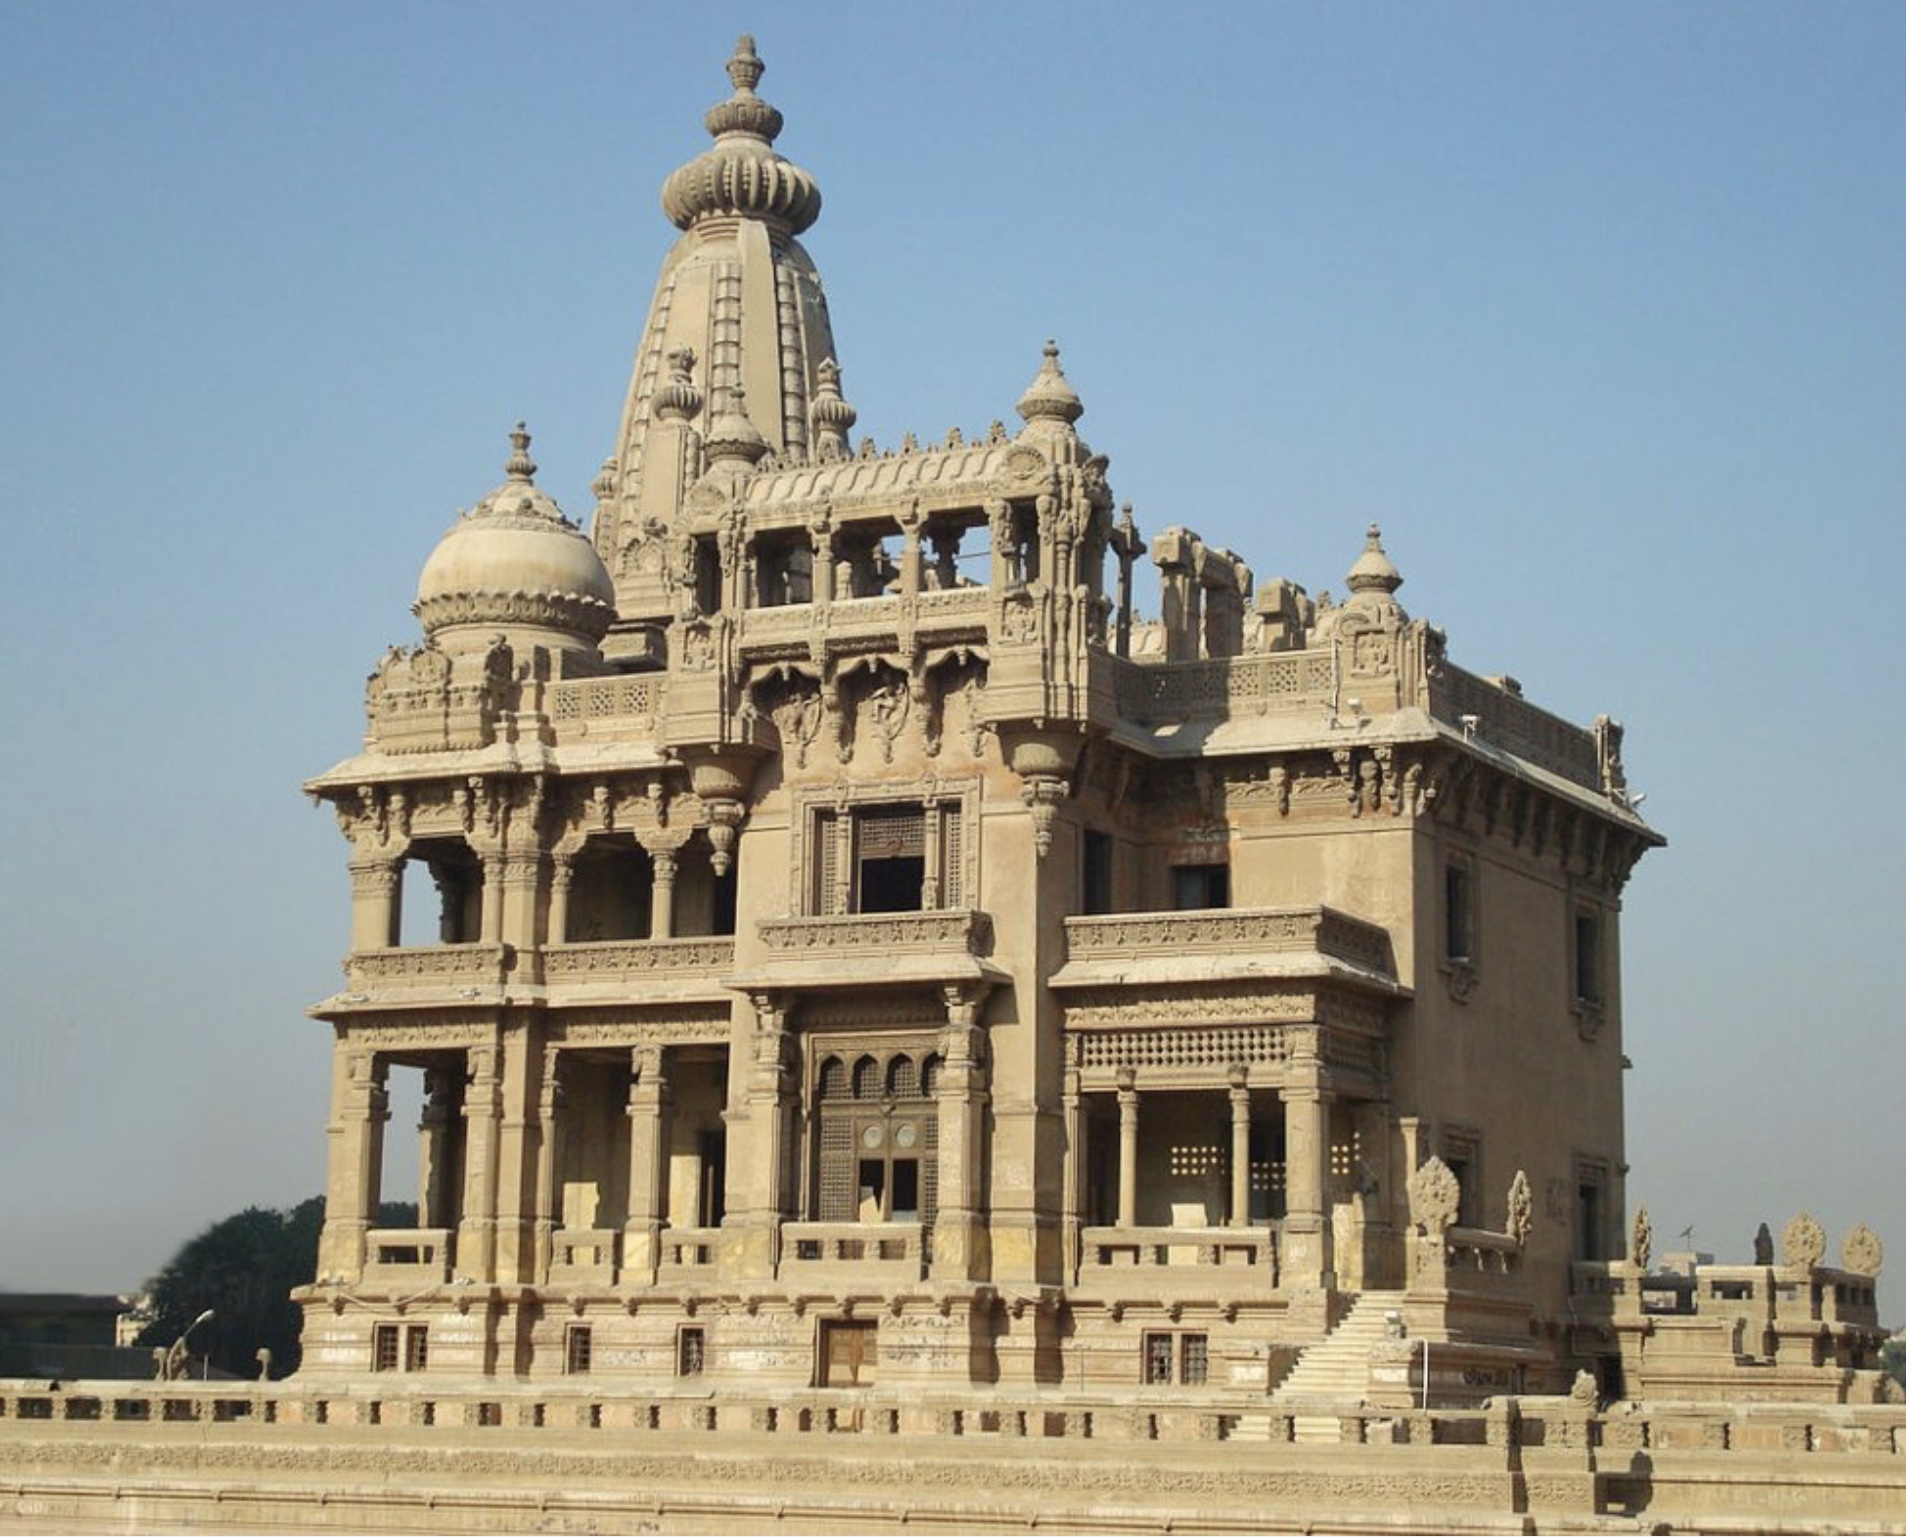 Baron's palace…Story of Heliopolis